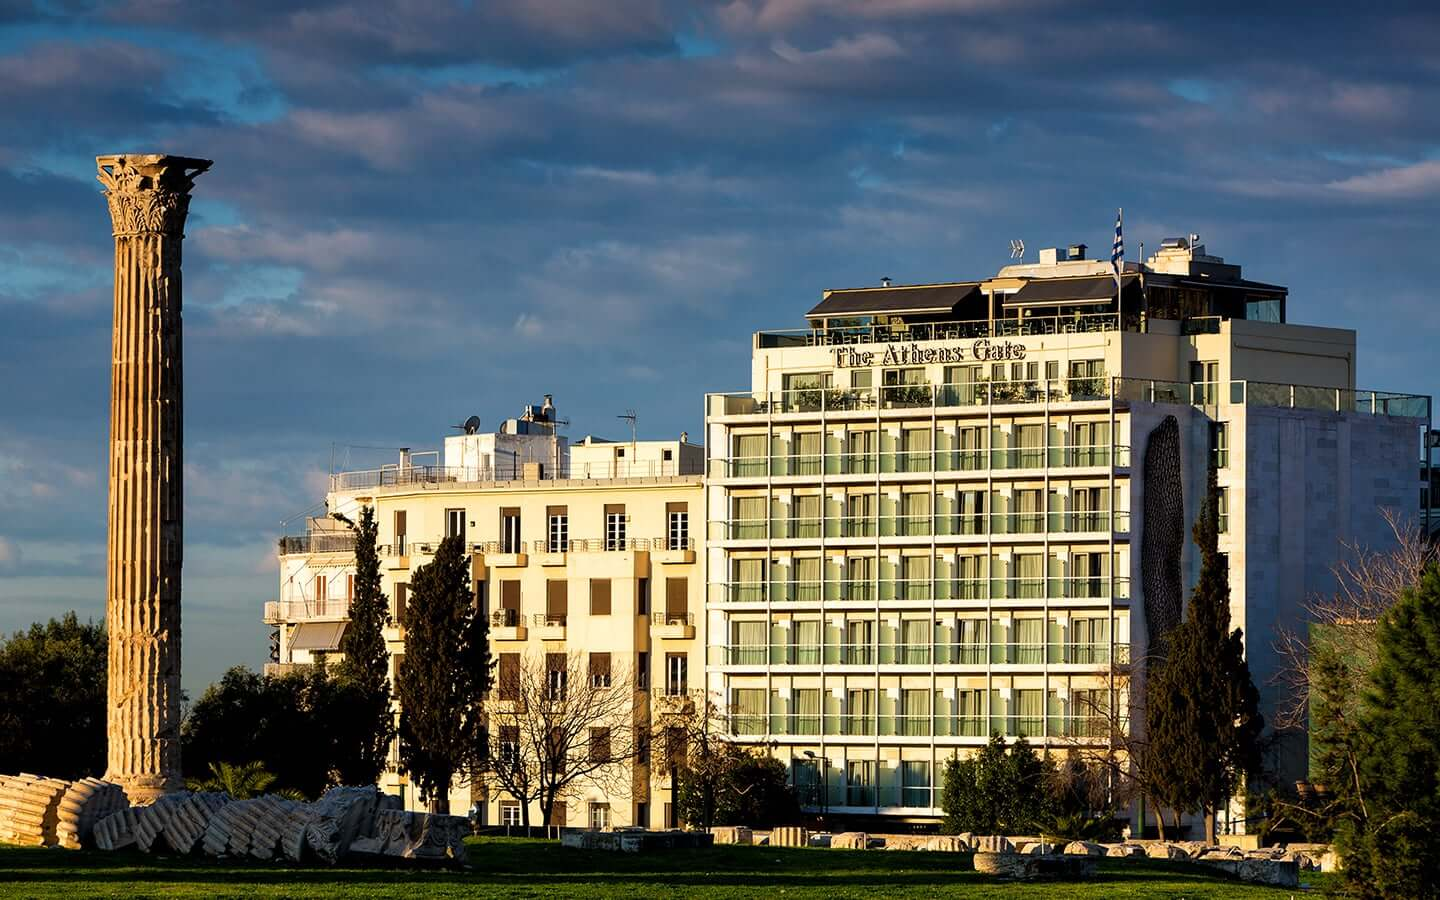 The Athens Gate Hotel, A 4 Star Hotel In The Centre Of Athens Located  Opposite